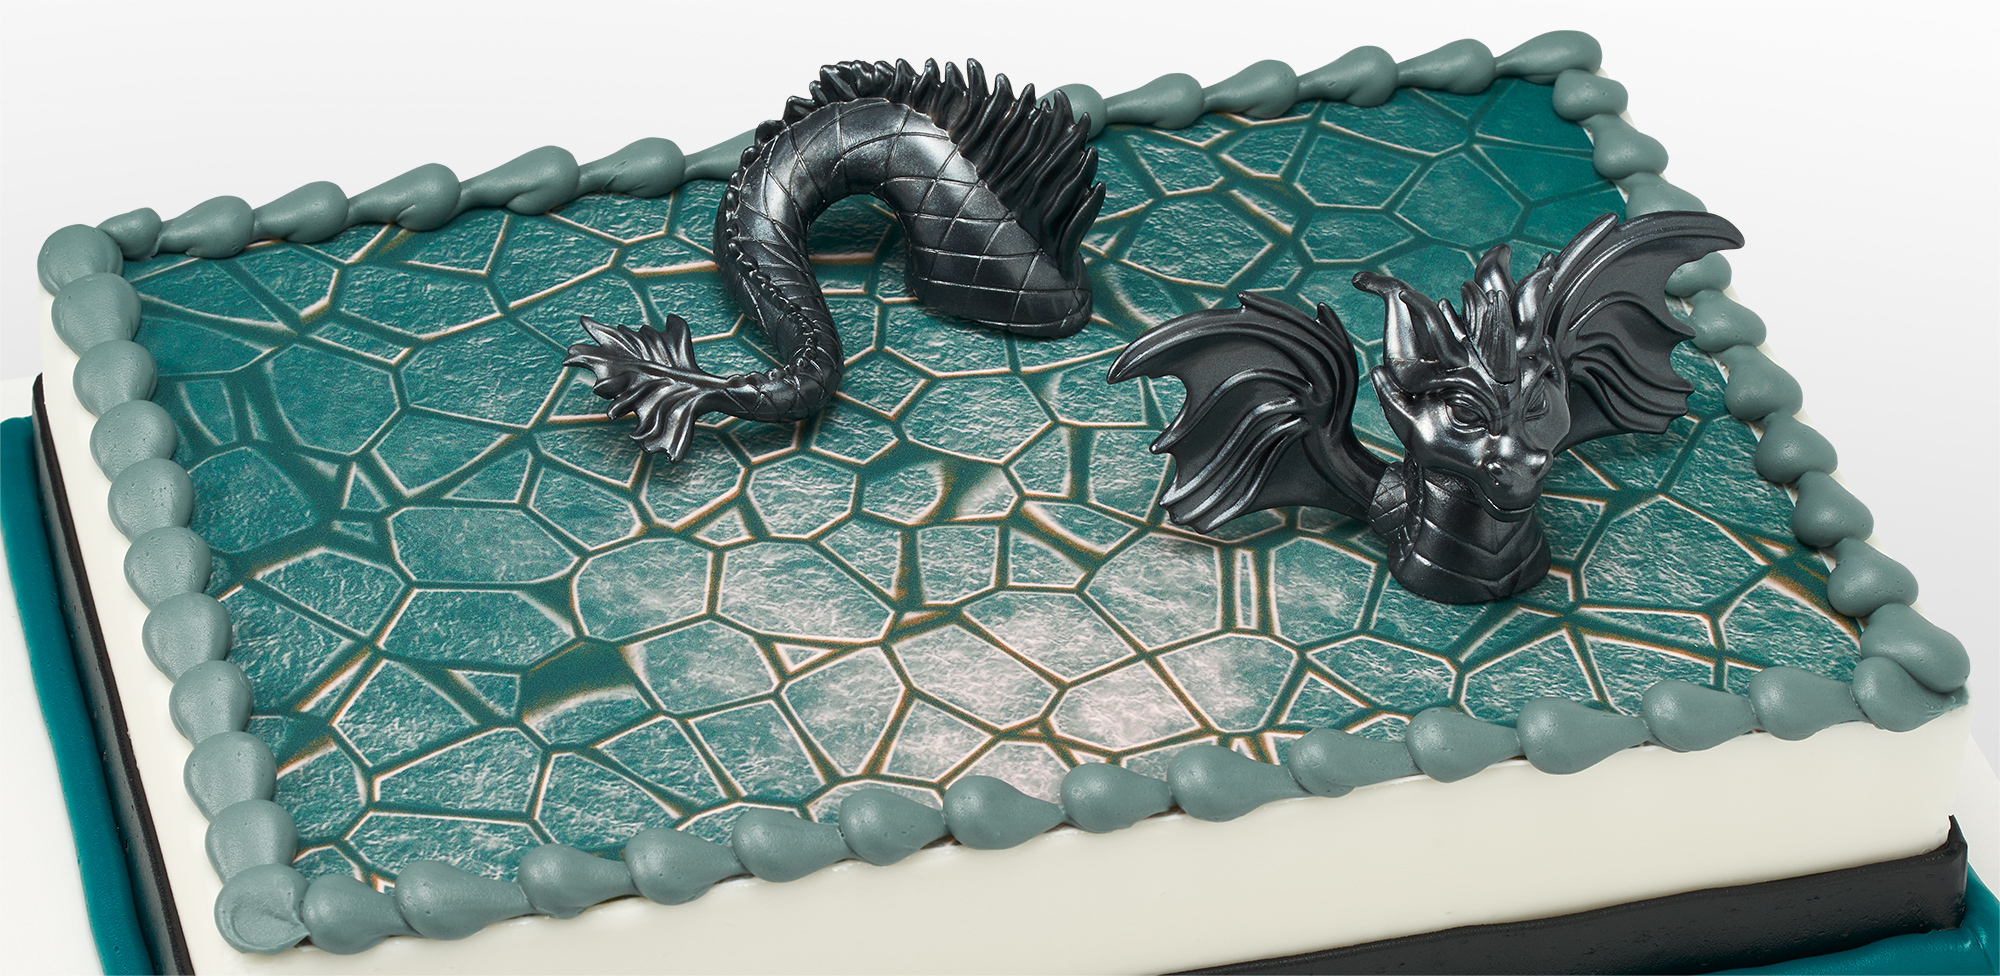 Stone Texture, Dragon Creations Cake